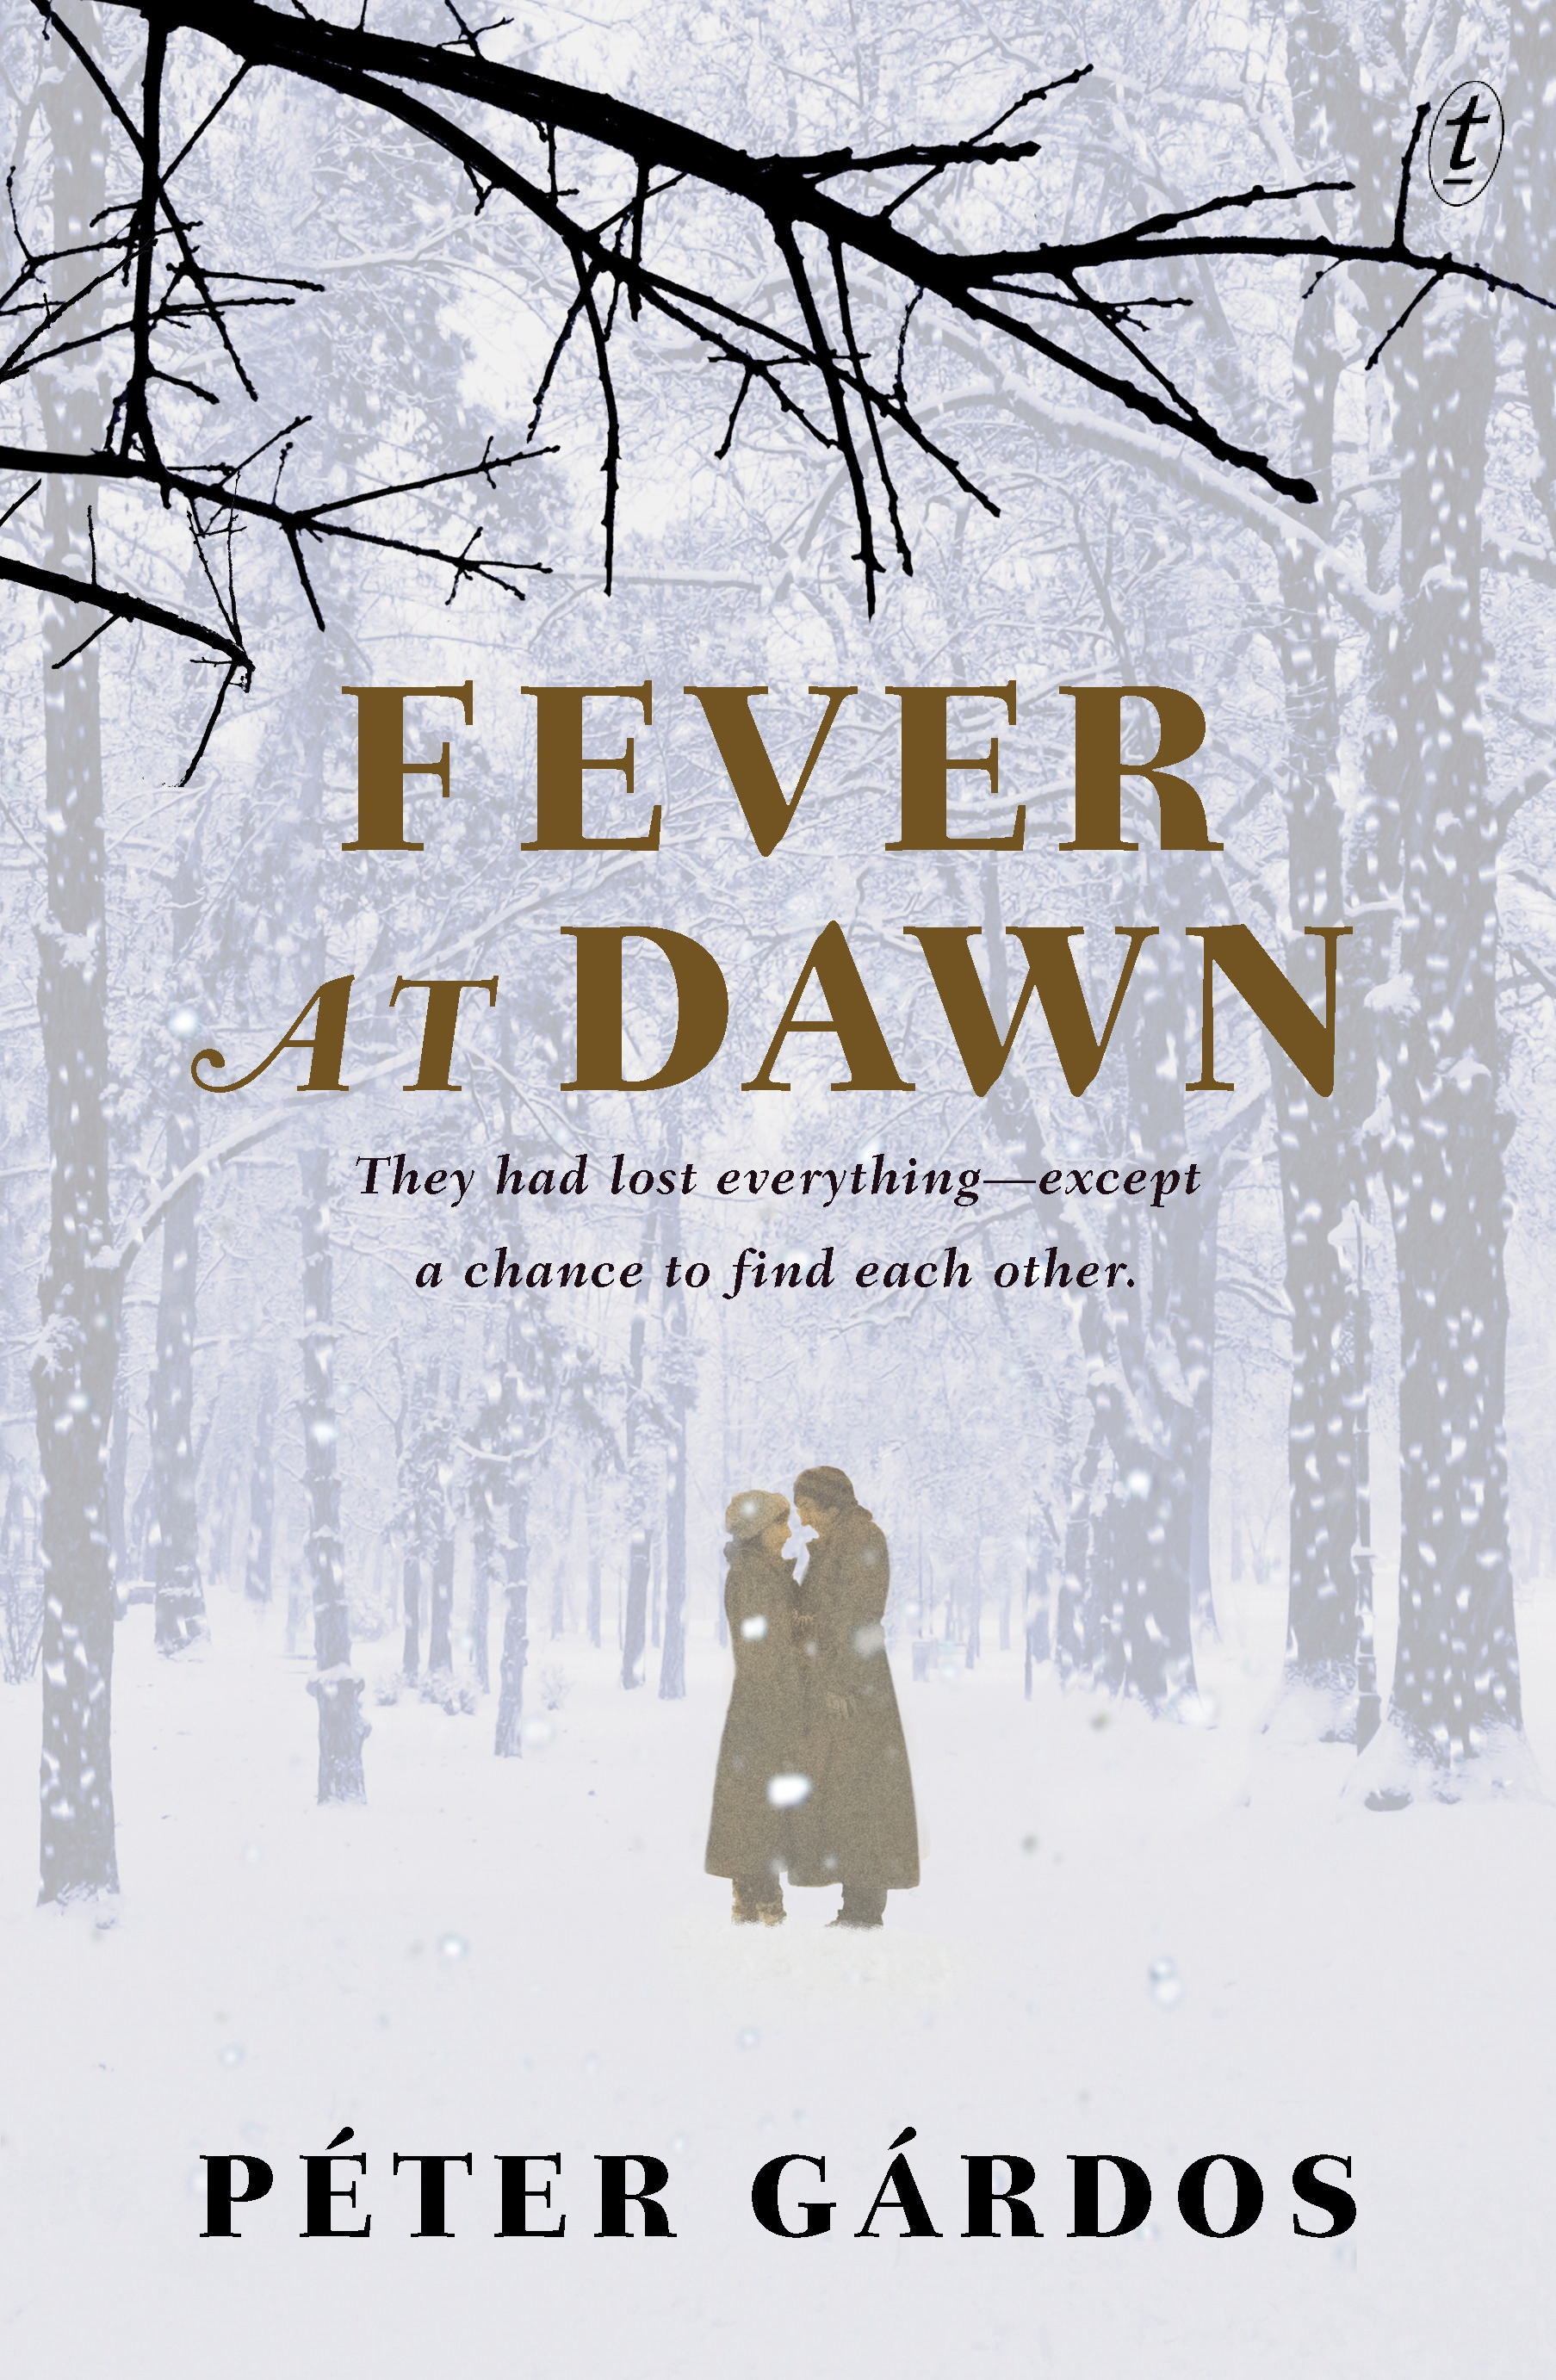 Fever at Dawn by Peter Gardos, ISBN: 9781925240771